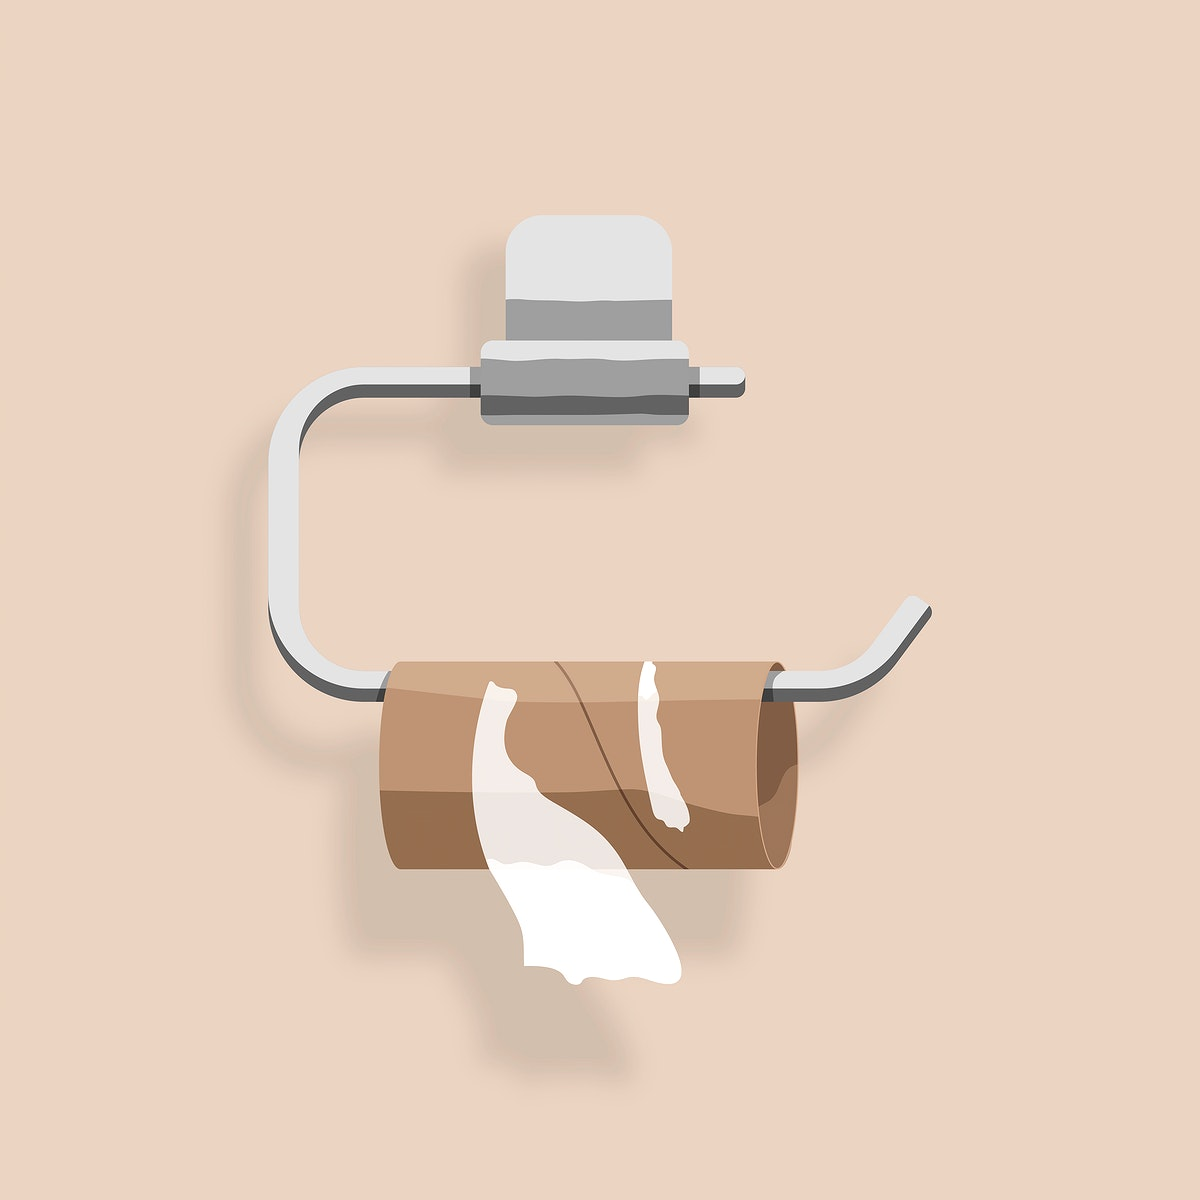 Ran out of toilet paper element vector